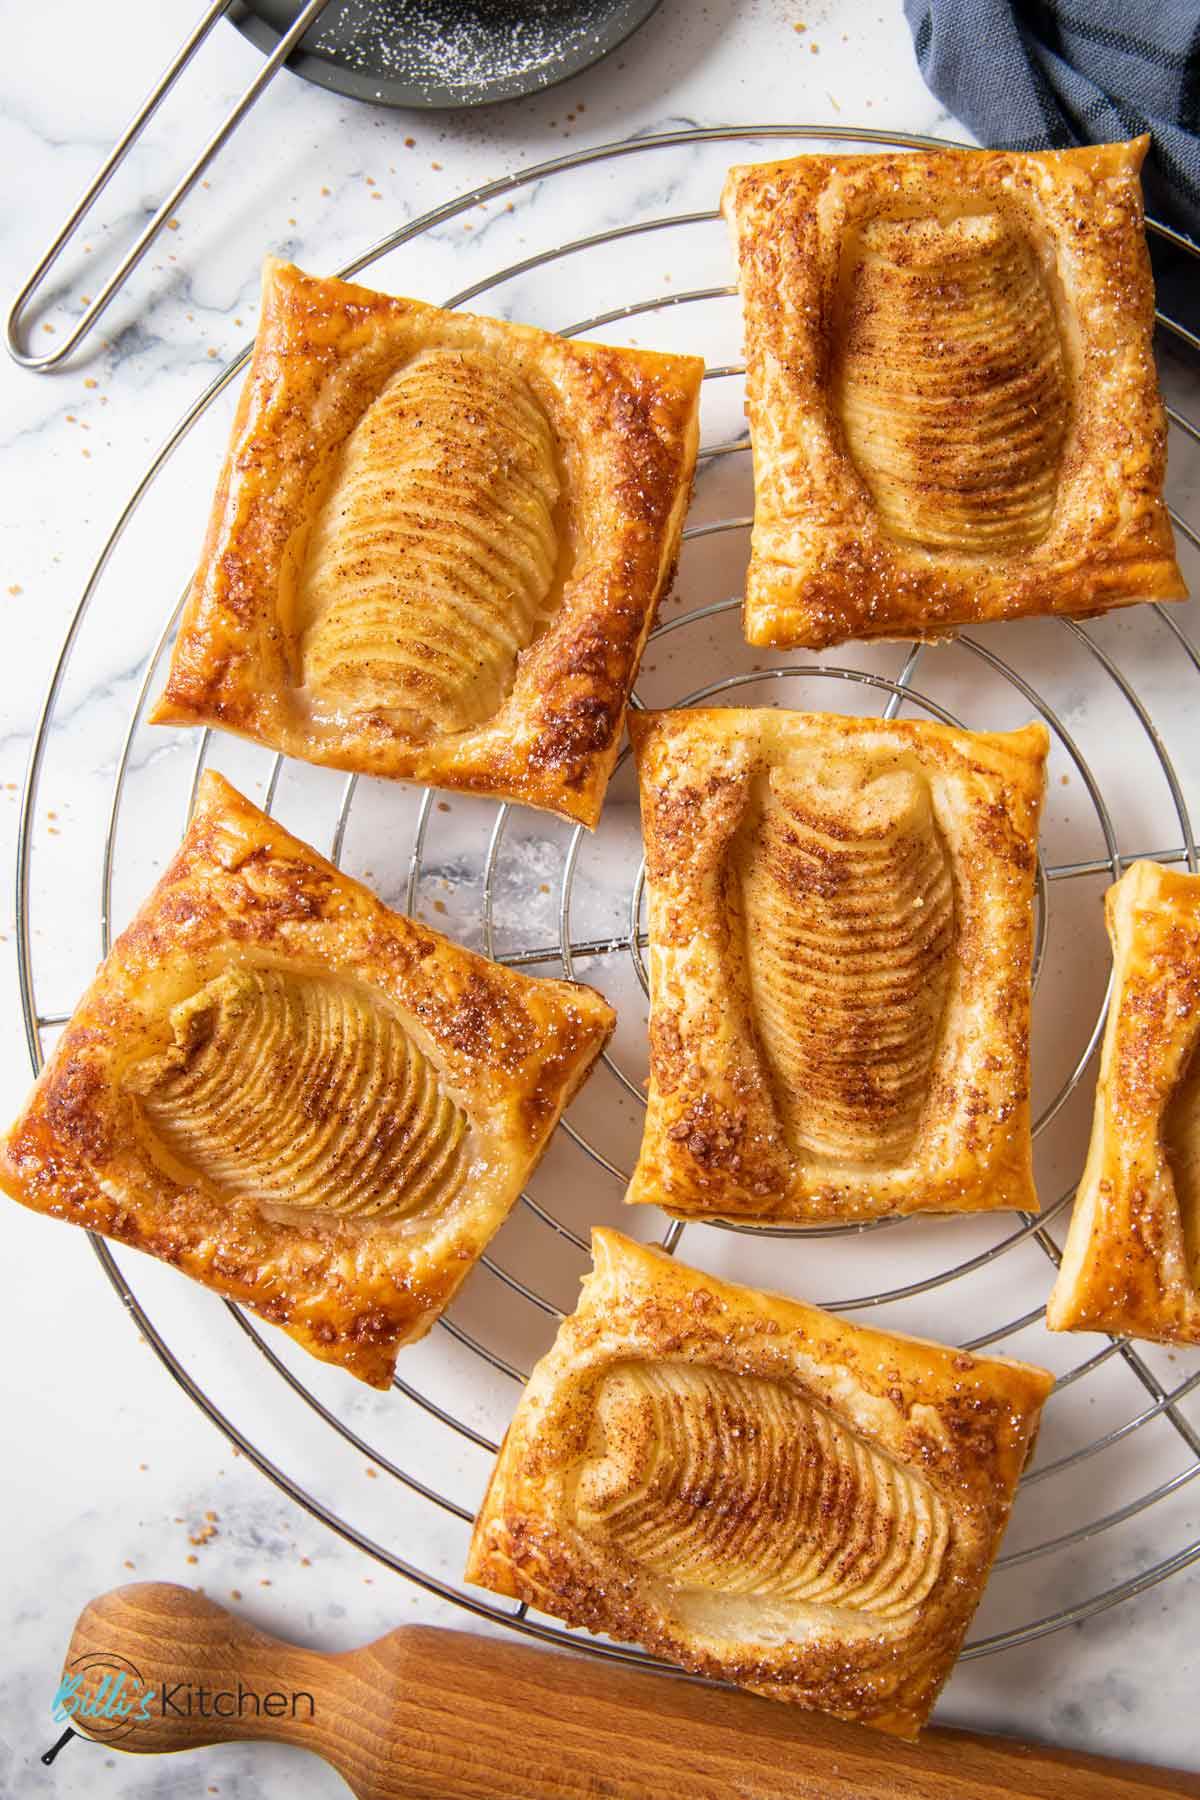 Freshly baked pear tarts on a cooling rack.